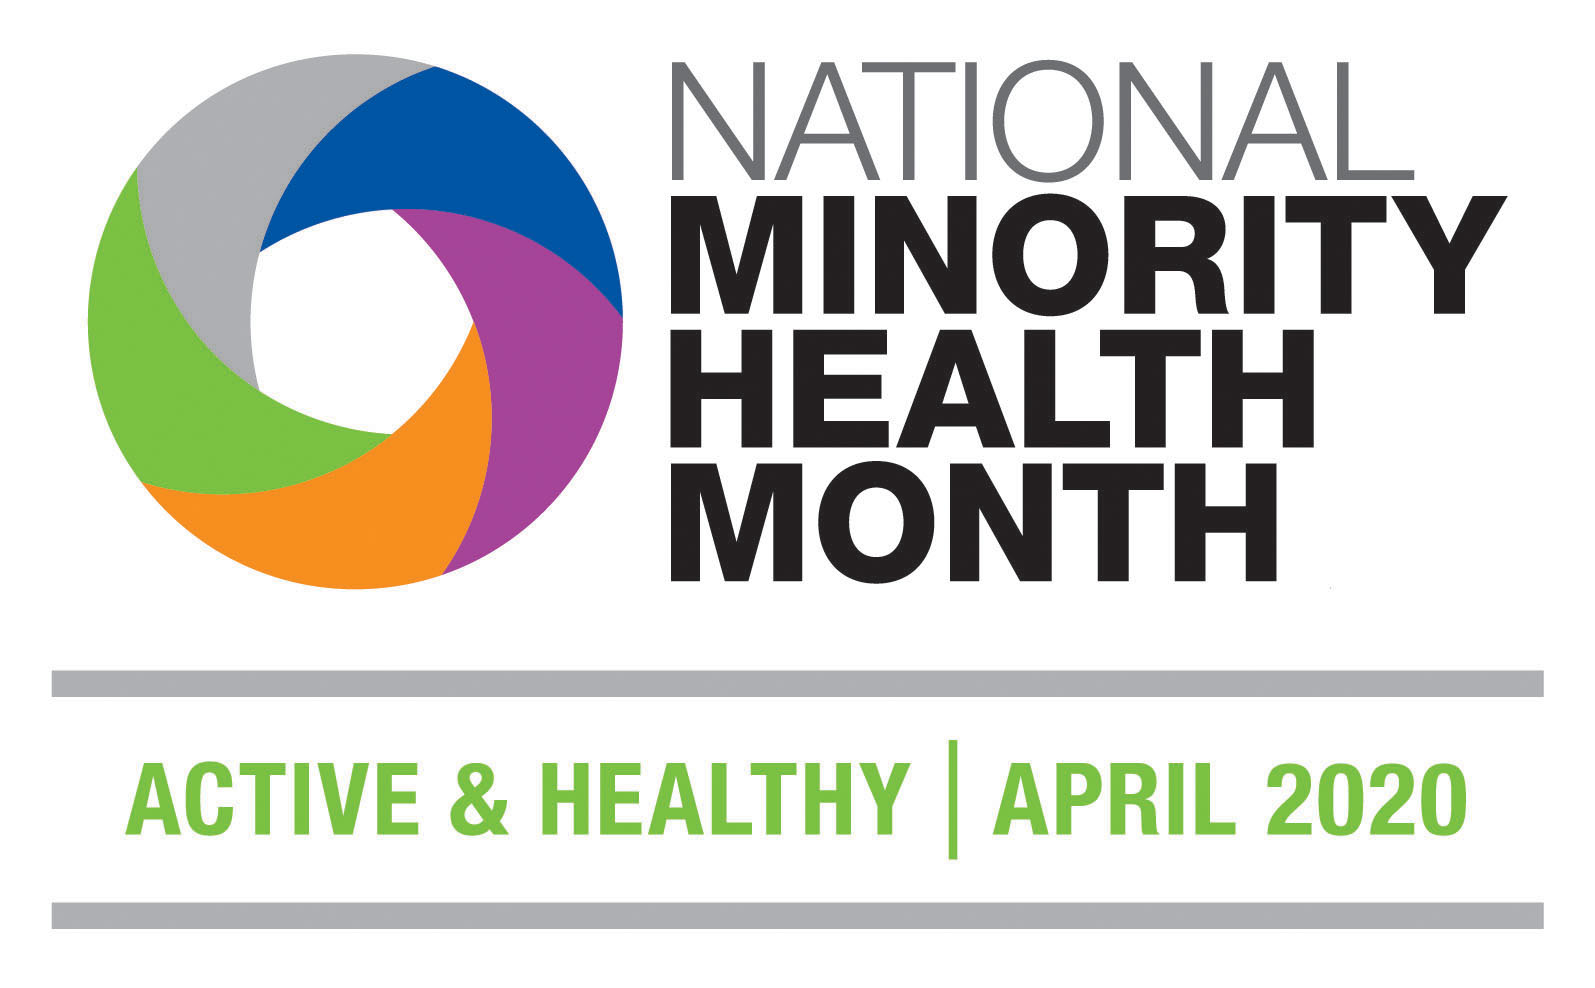 National Minority Health Month logo - Active & Healthy | April 2020